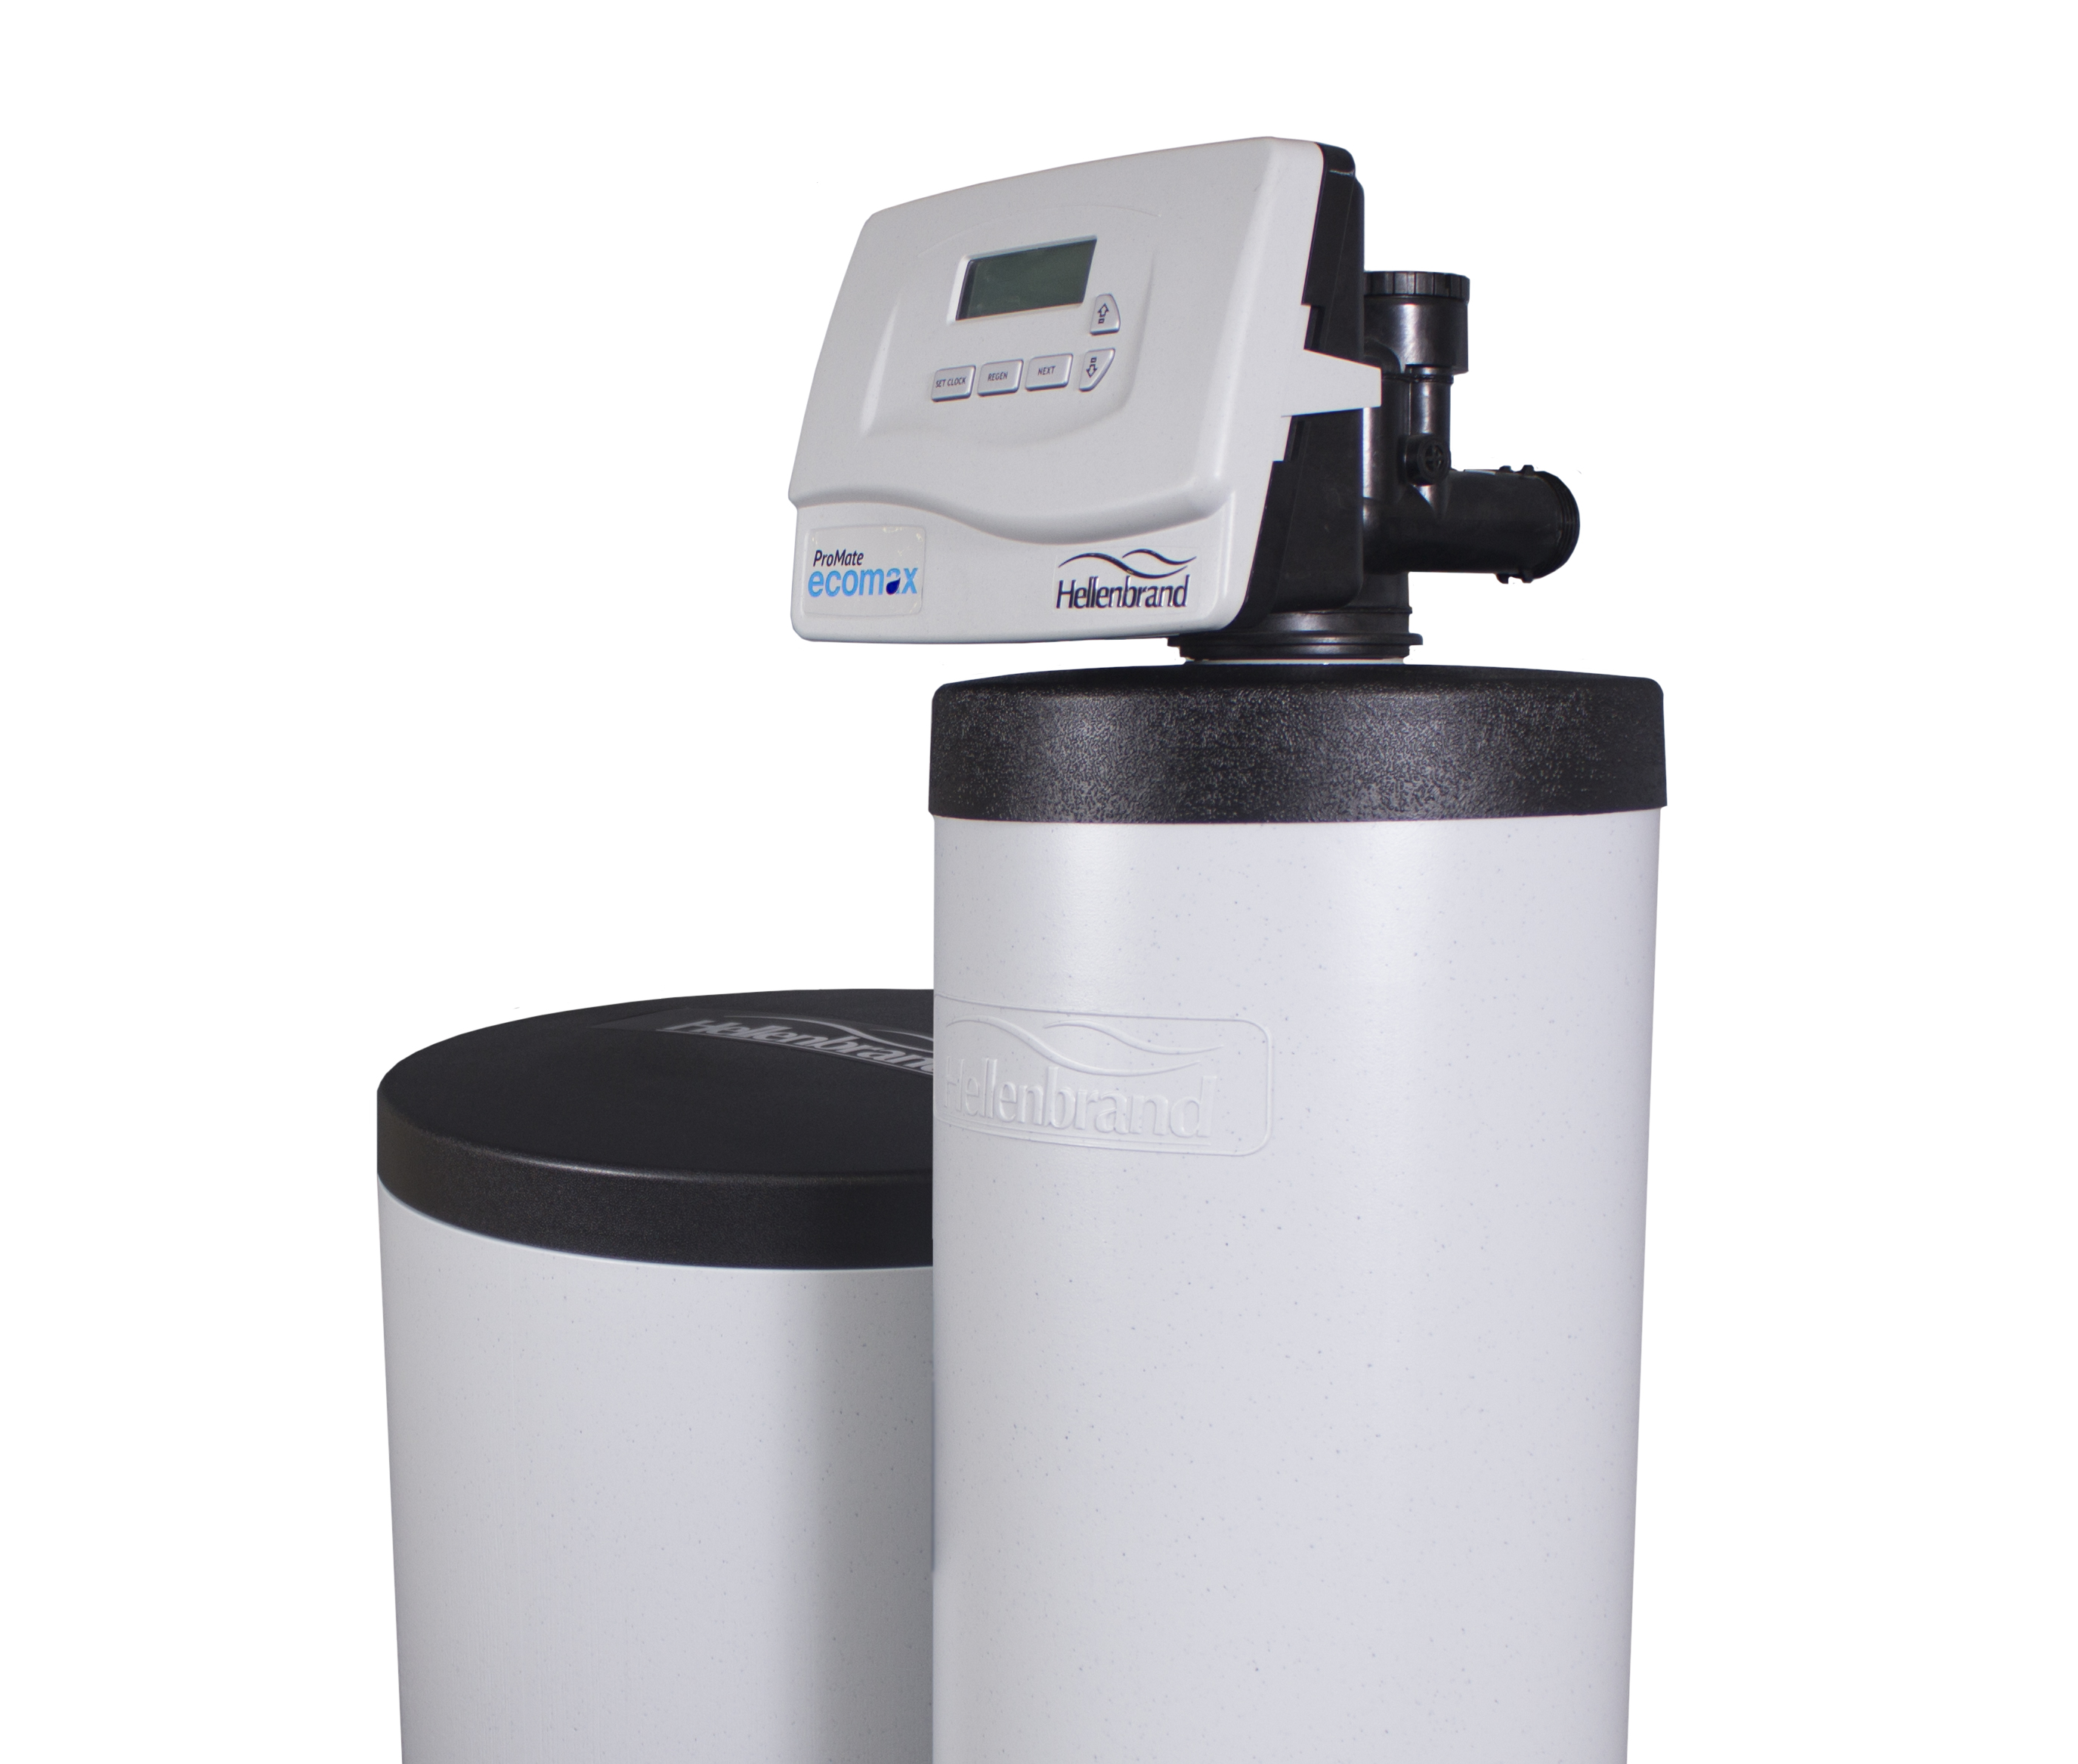 premium water softeners with fair prices 1600 1900 - Water Softener Price